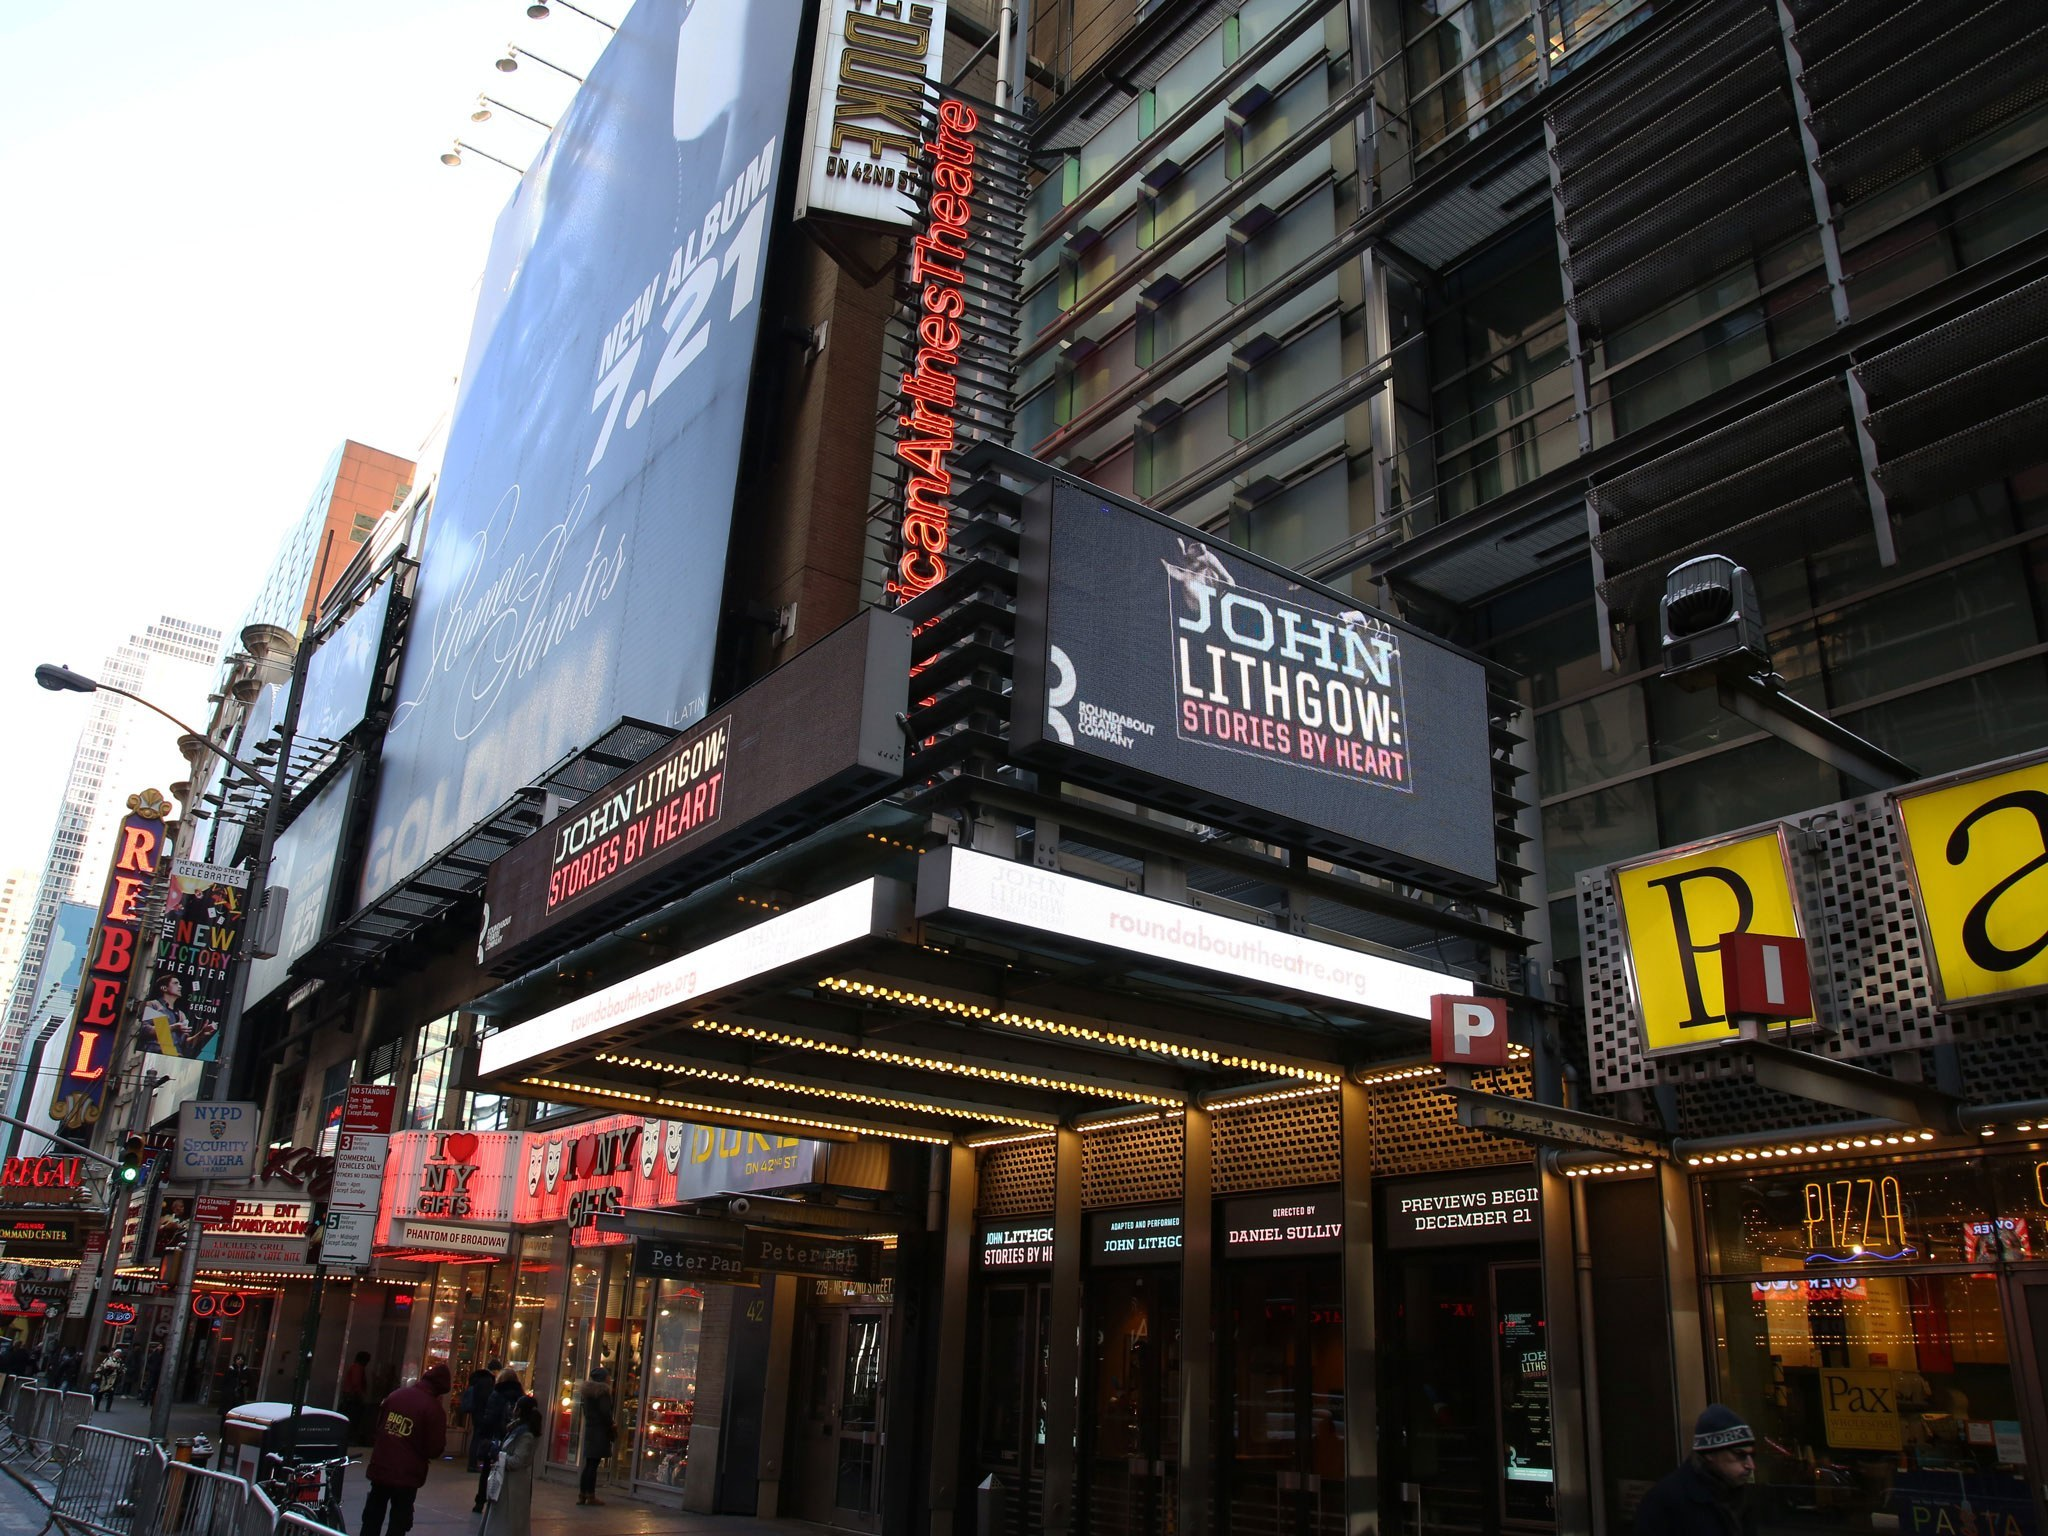 John Lithgow: Stories by Heart Marquee